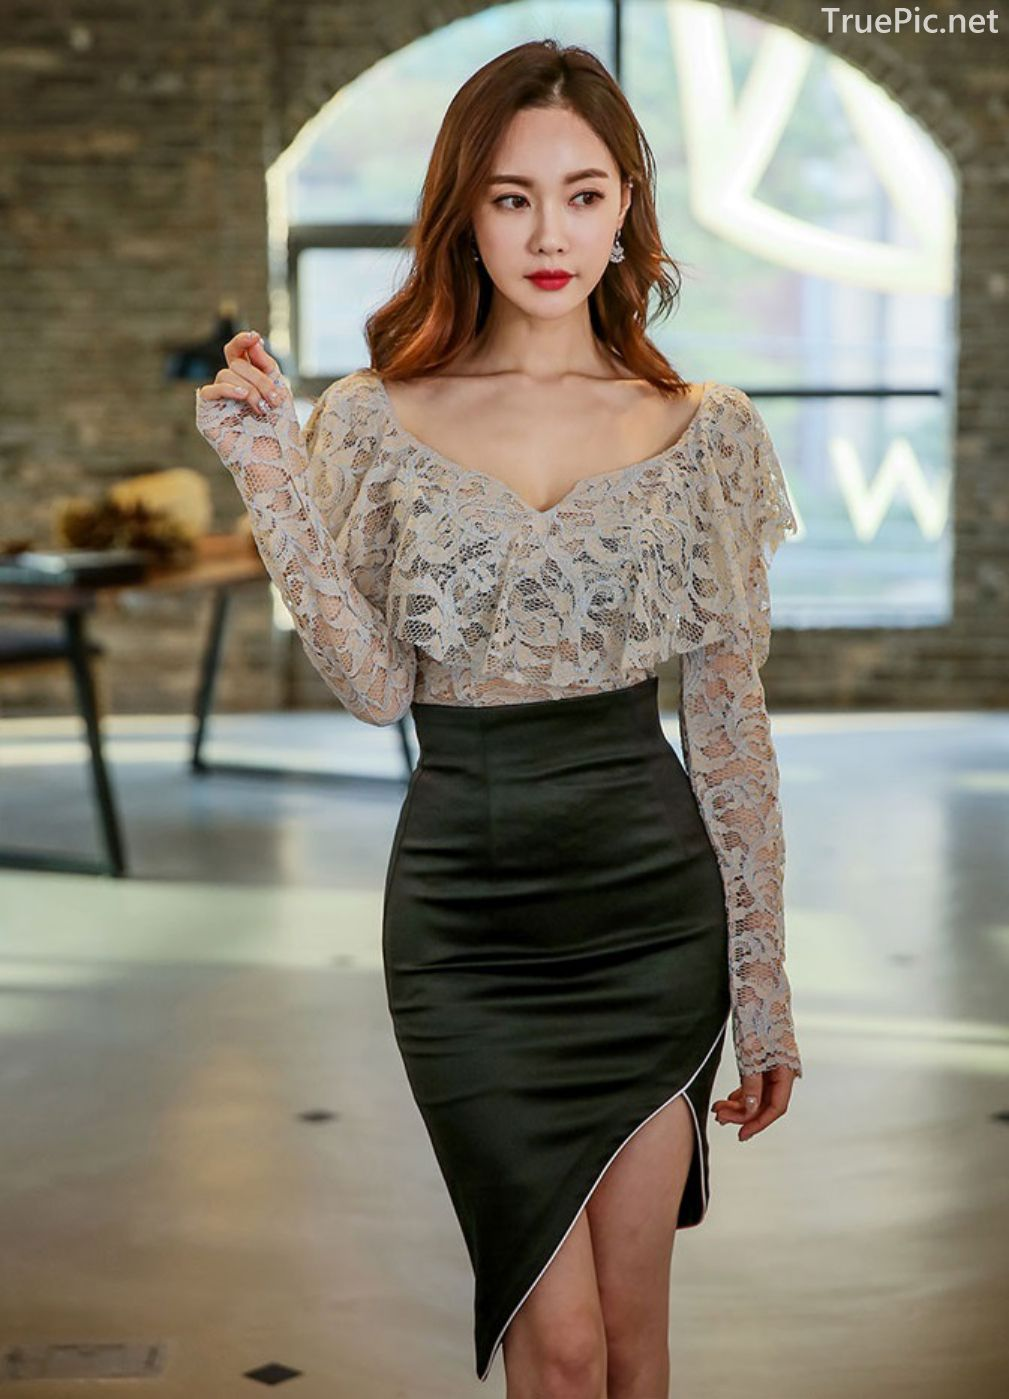 Korean Fashion Model - Hyemi - Indoor Photoshoot Collection - TruePic.net - Picture 2